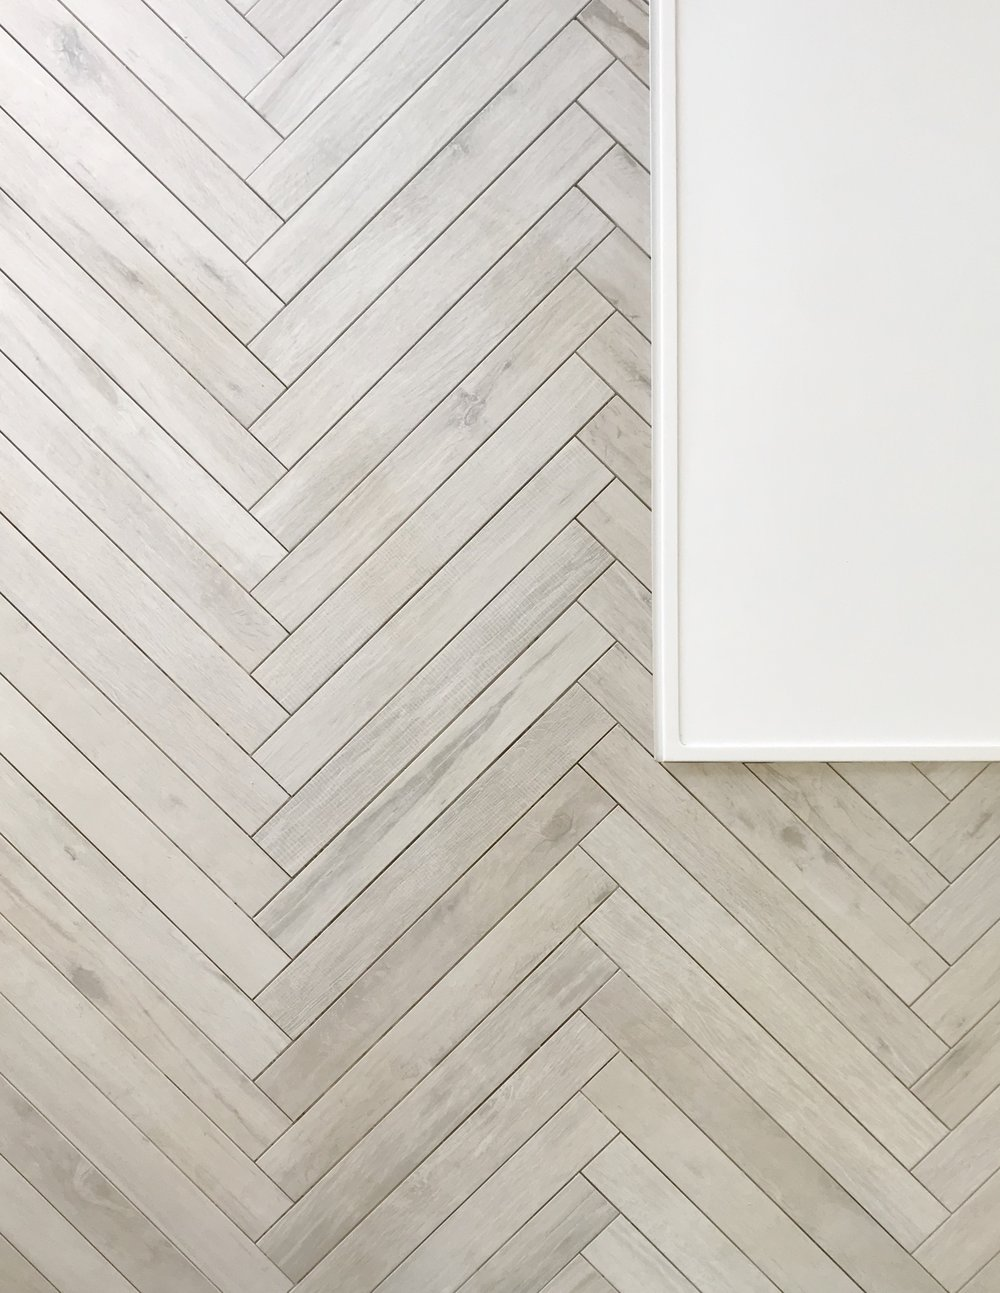 Tile featured: Wood of Cerim waterjet to create herringbone